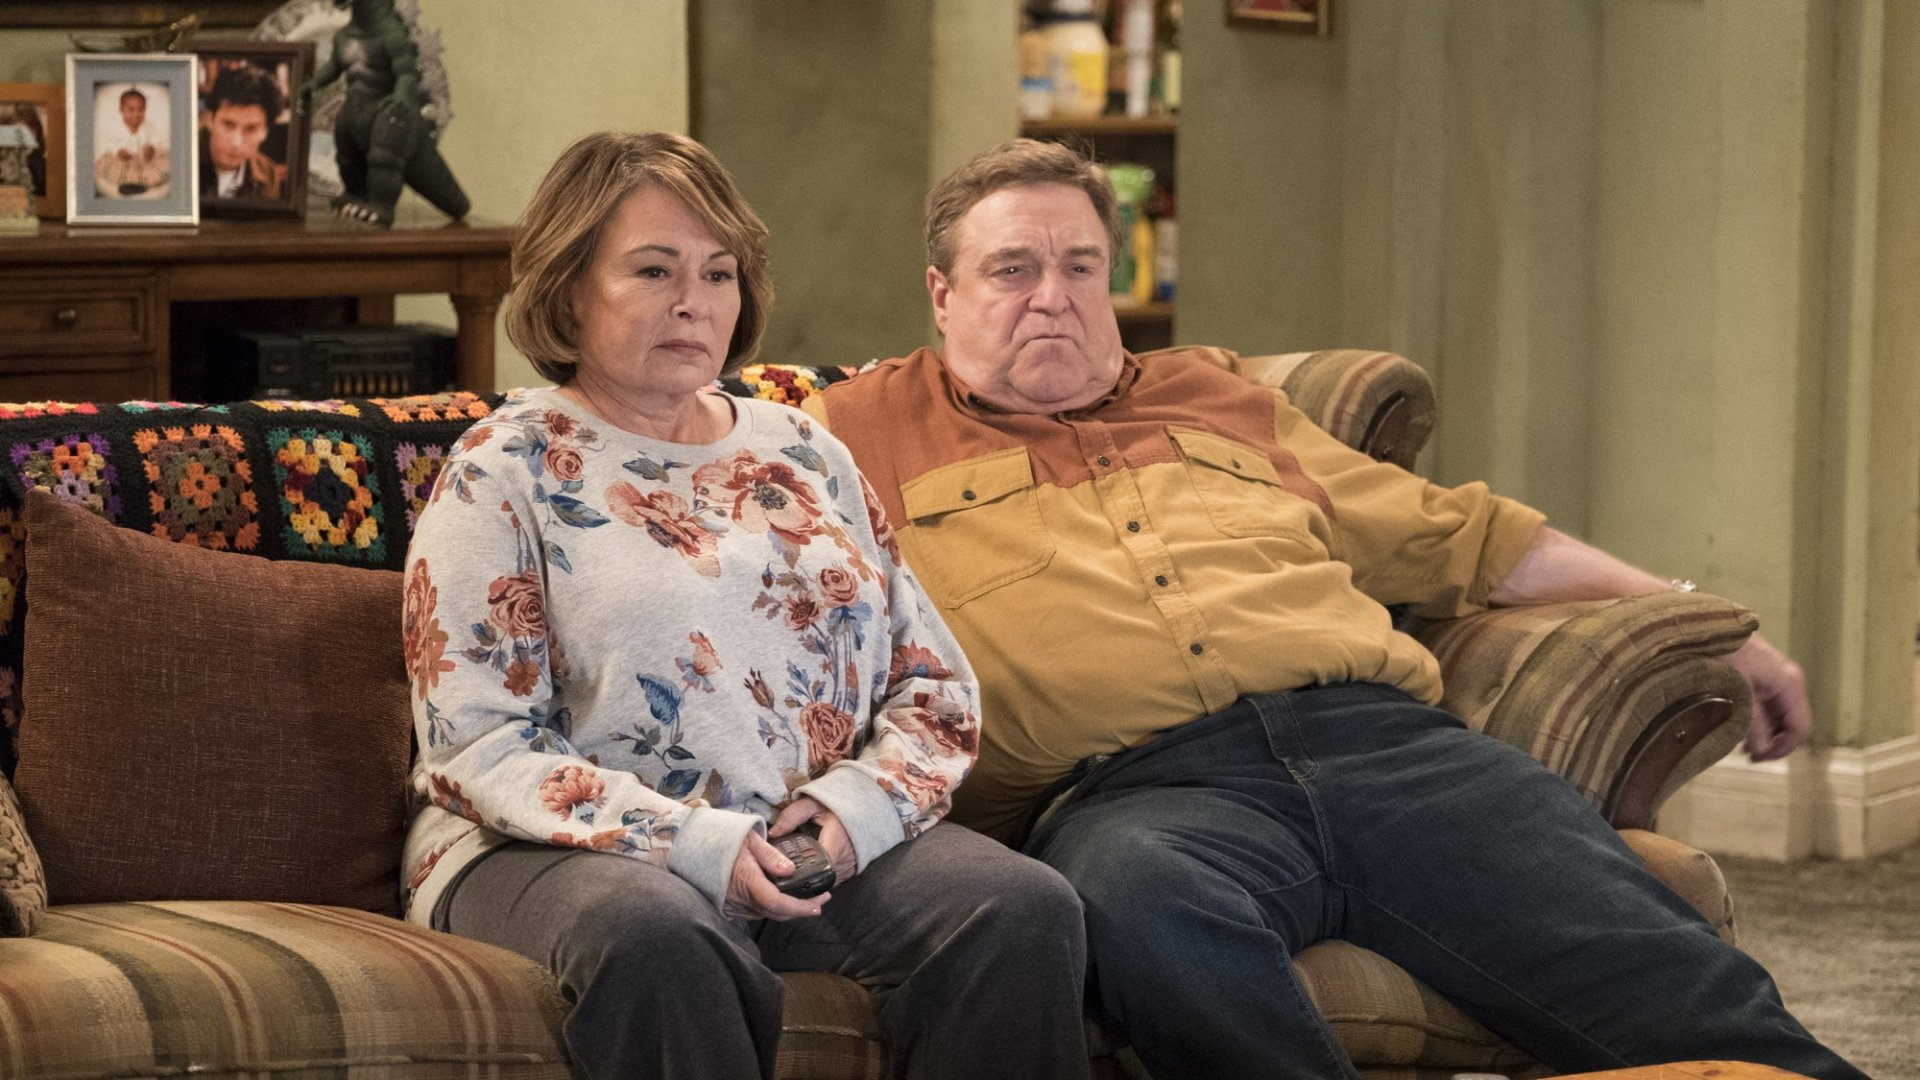 3 Essential Elements of an Effective Apology That Roseanne's Awful One Totally Lacked